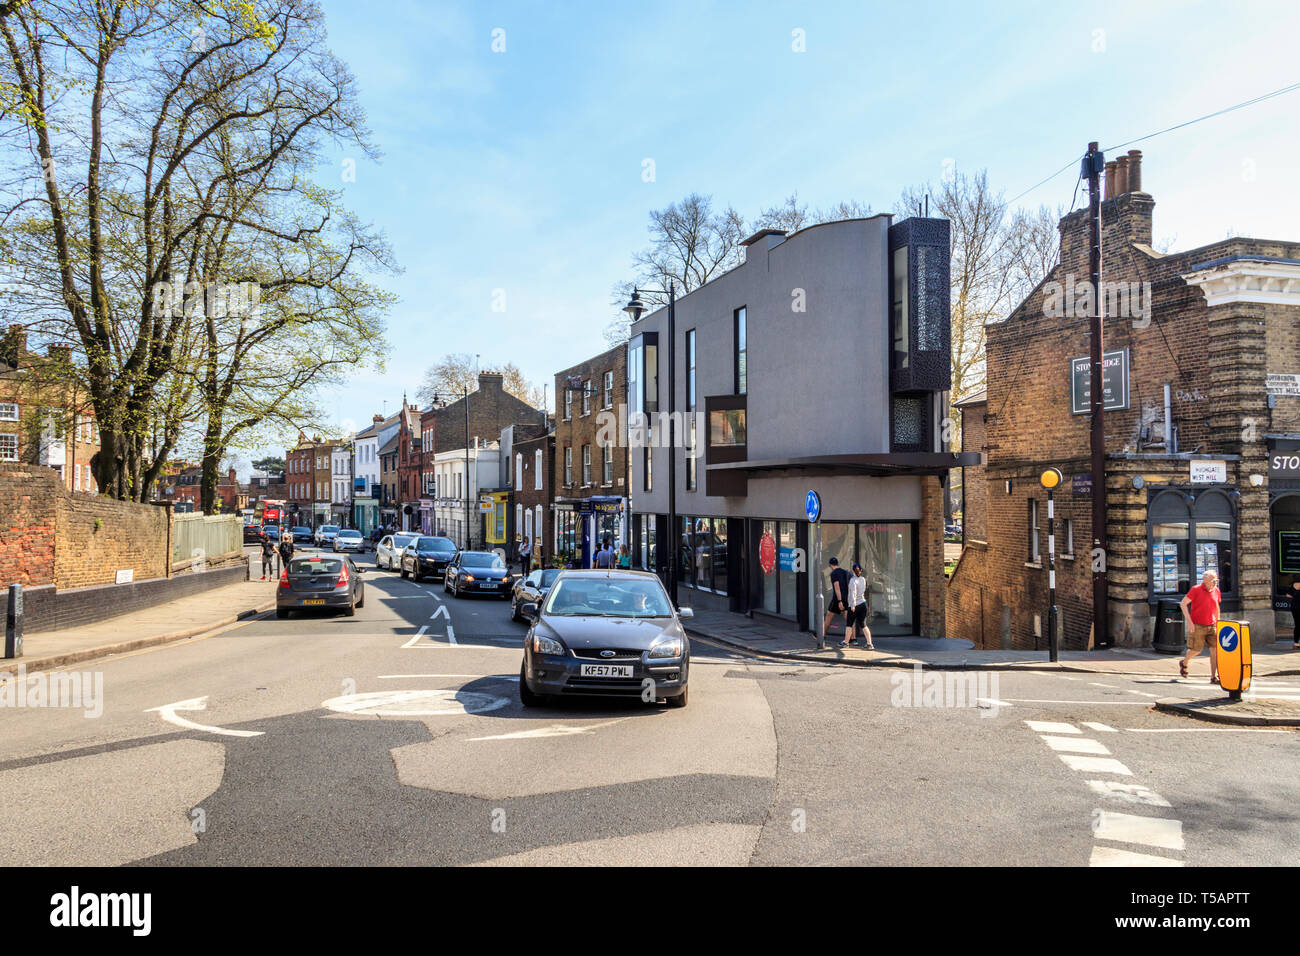 Modern architecture meets traditional Georgian style in Highgate Village, London, UK, on a warm and sunny Easter weekend - Stock Image